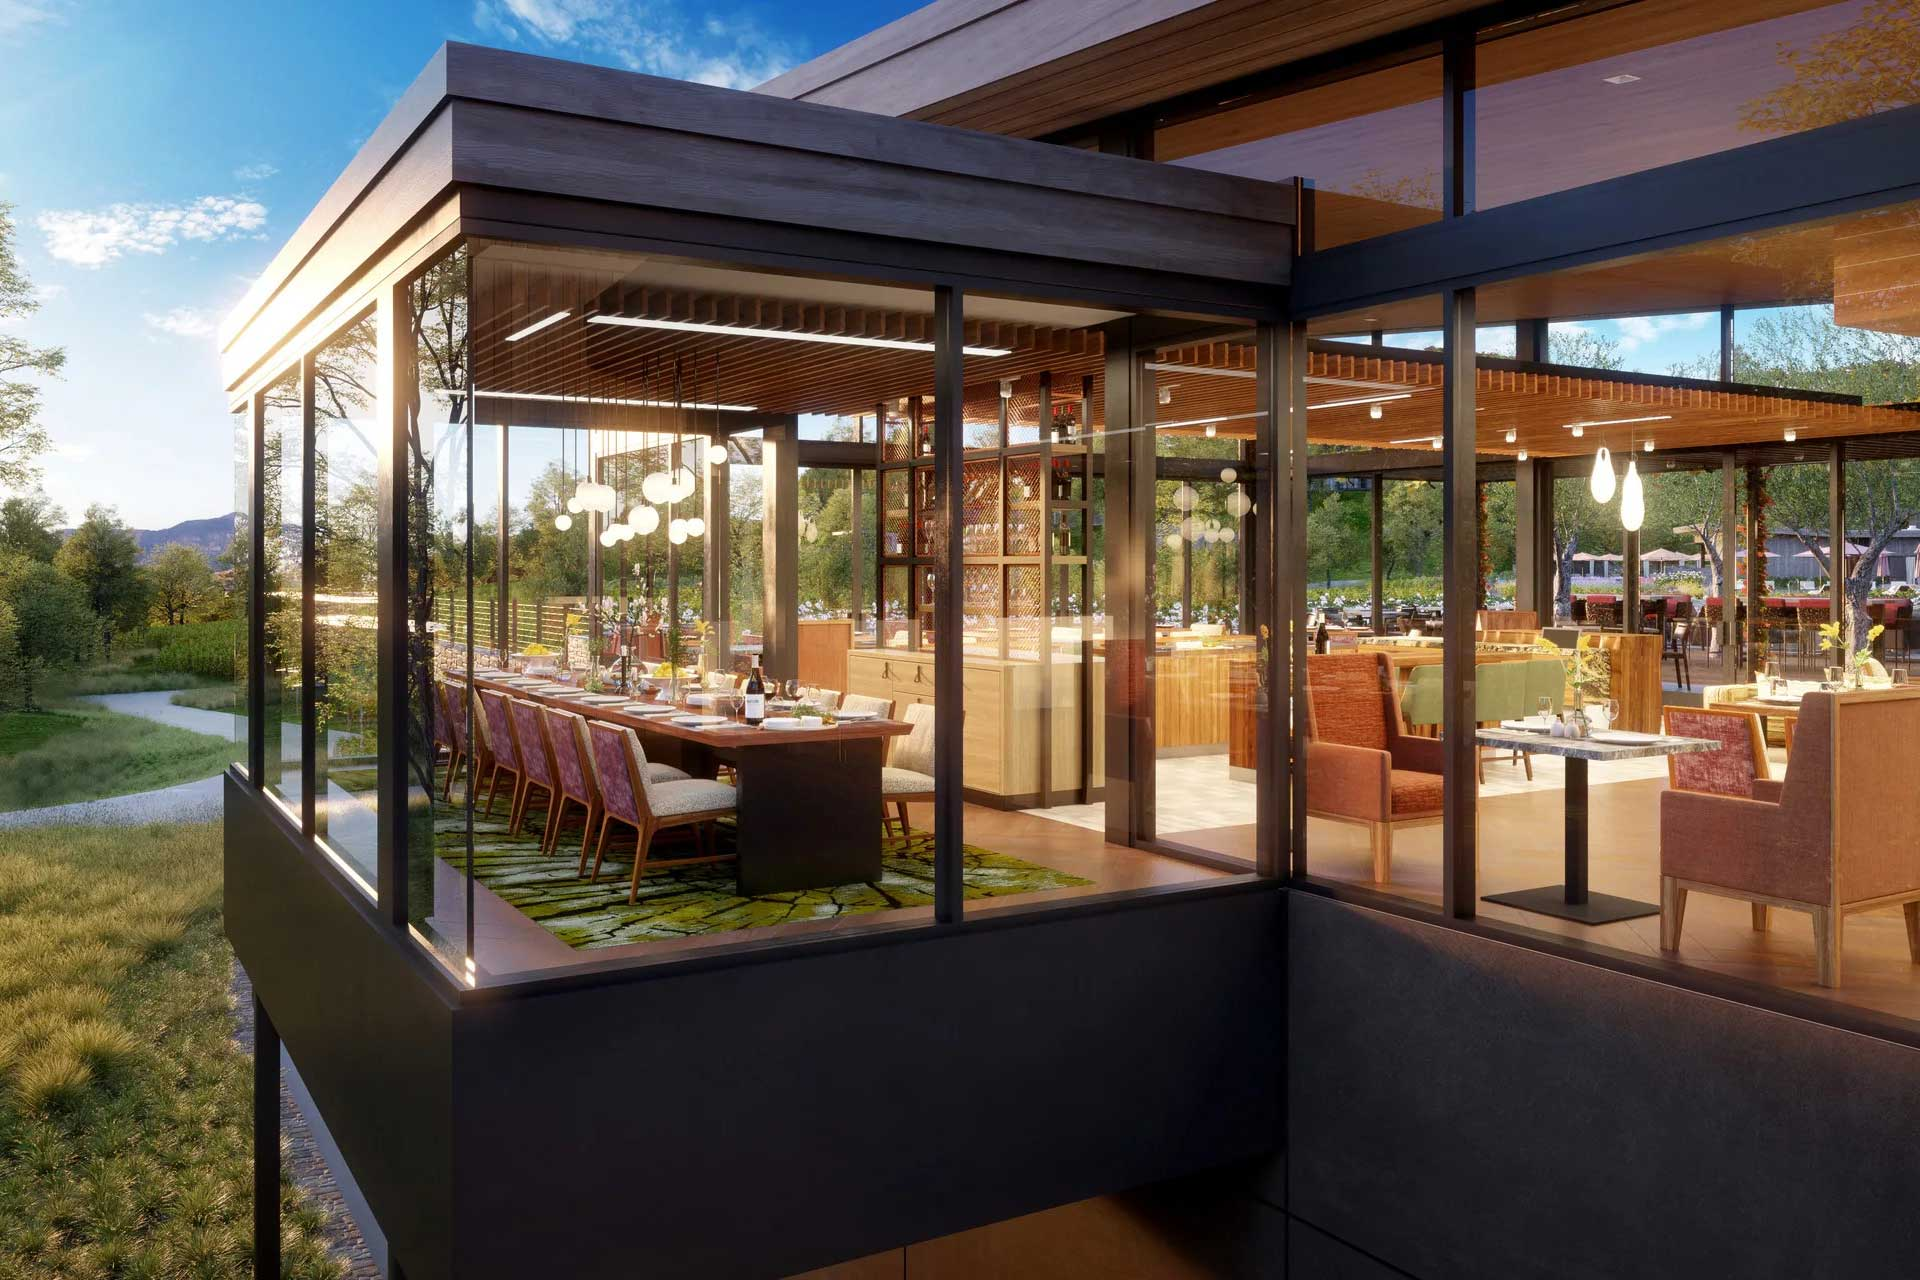 A treehouse-inspired dining room will anchor Montage Healdsburg's F&B offer